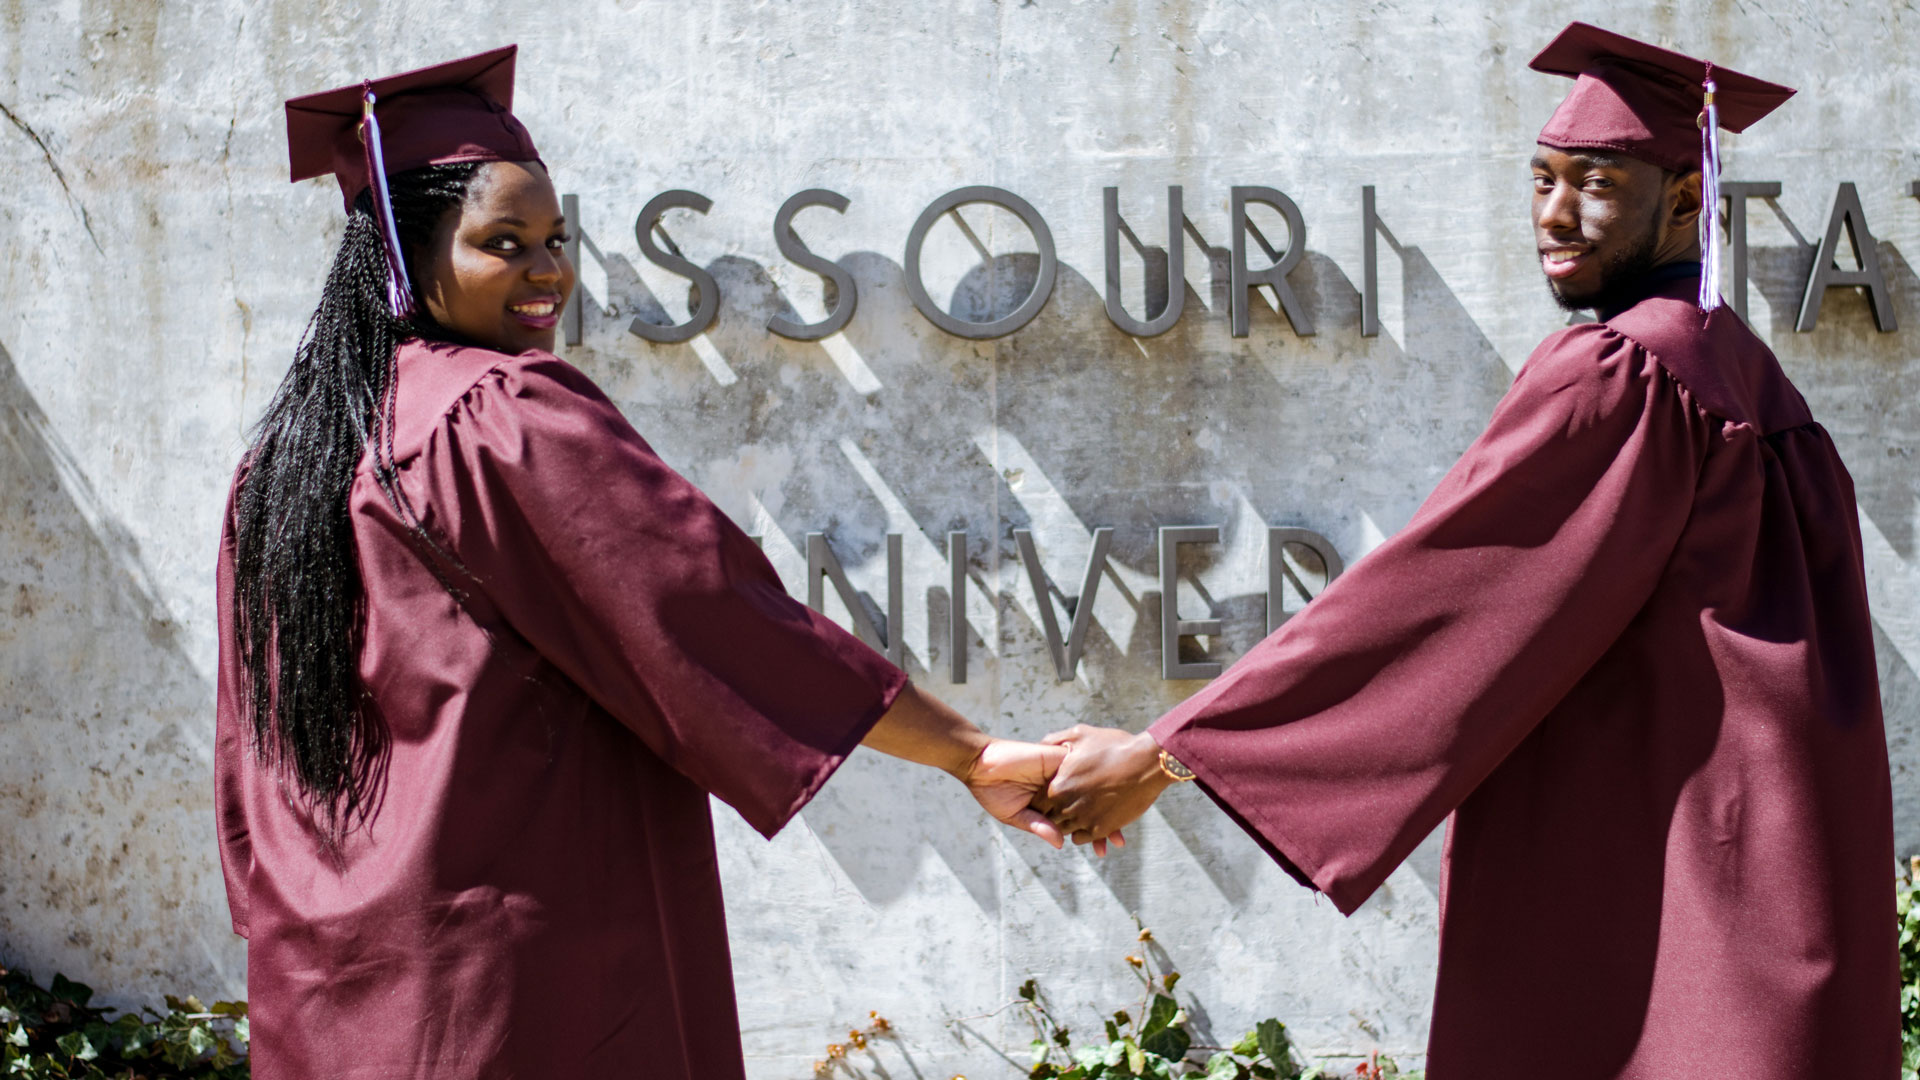 Alumni in graduation gowns in front of Missouri State sign